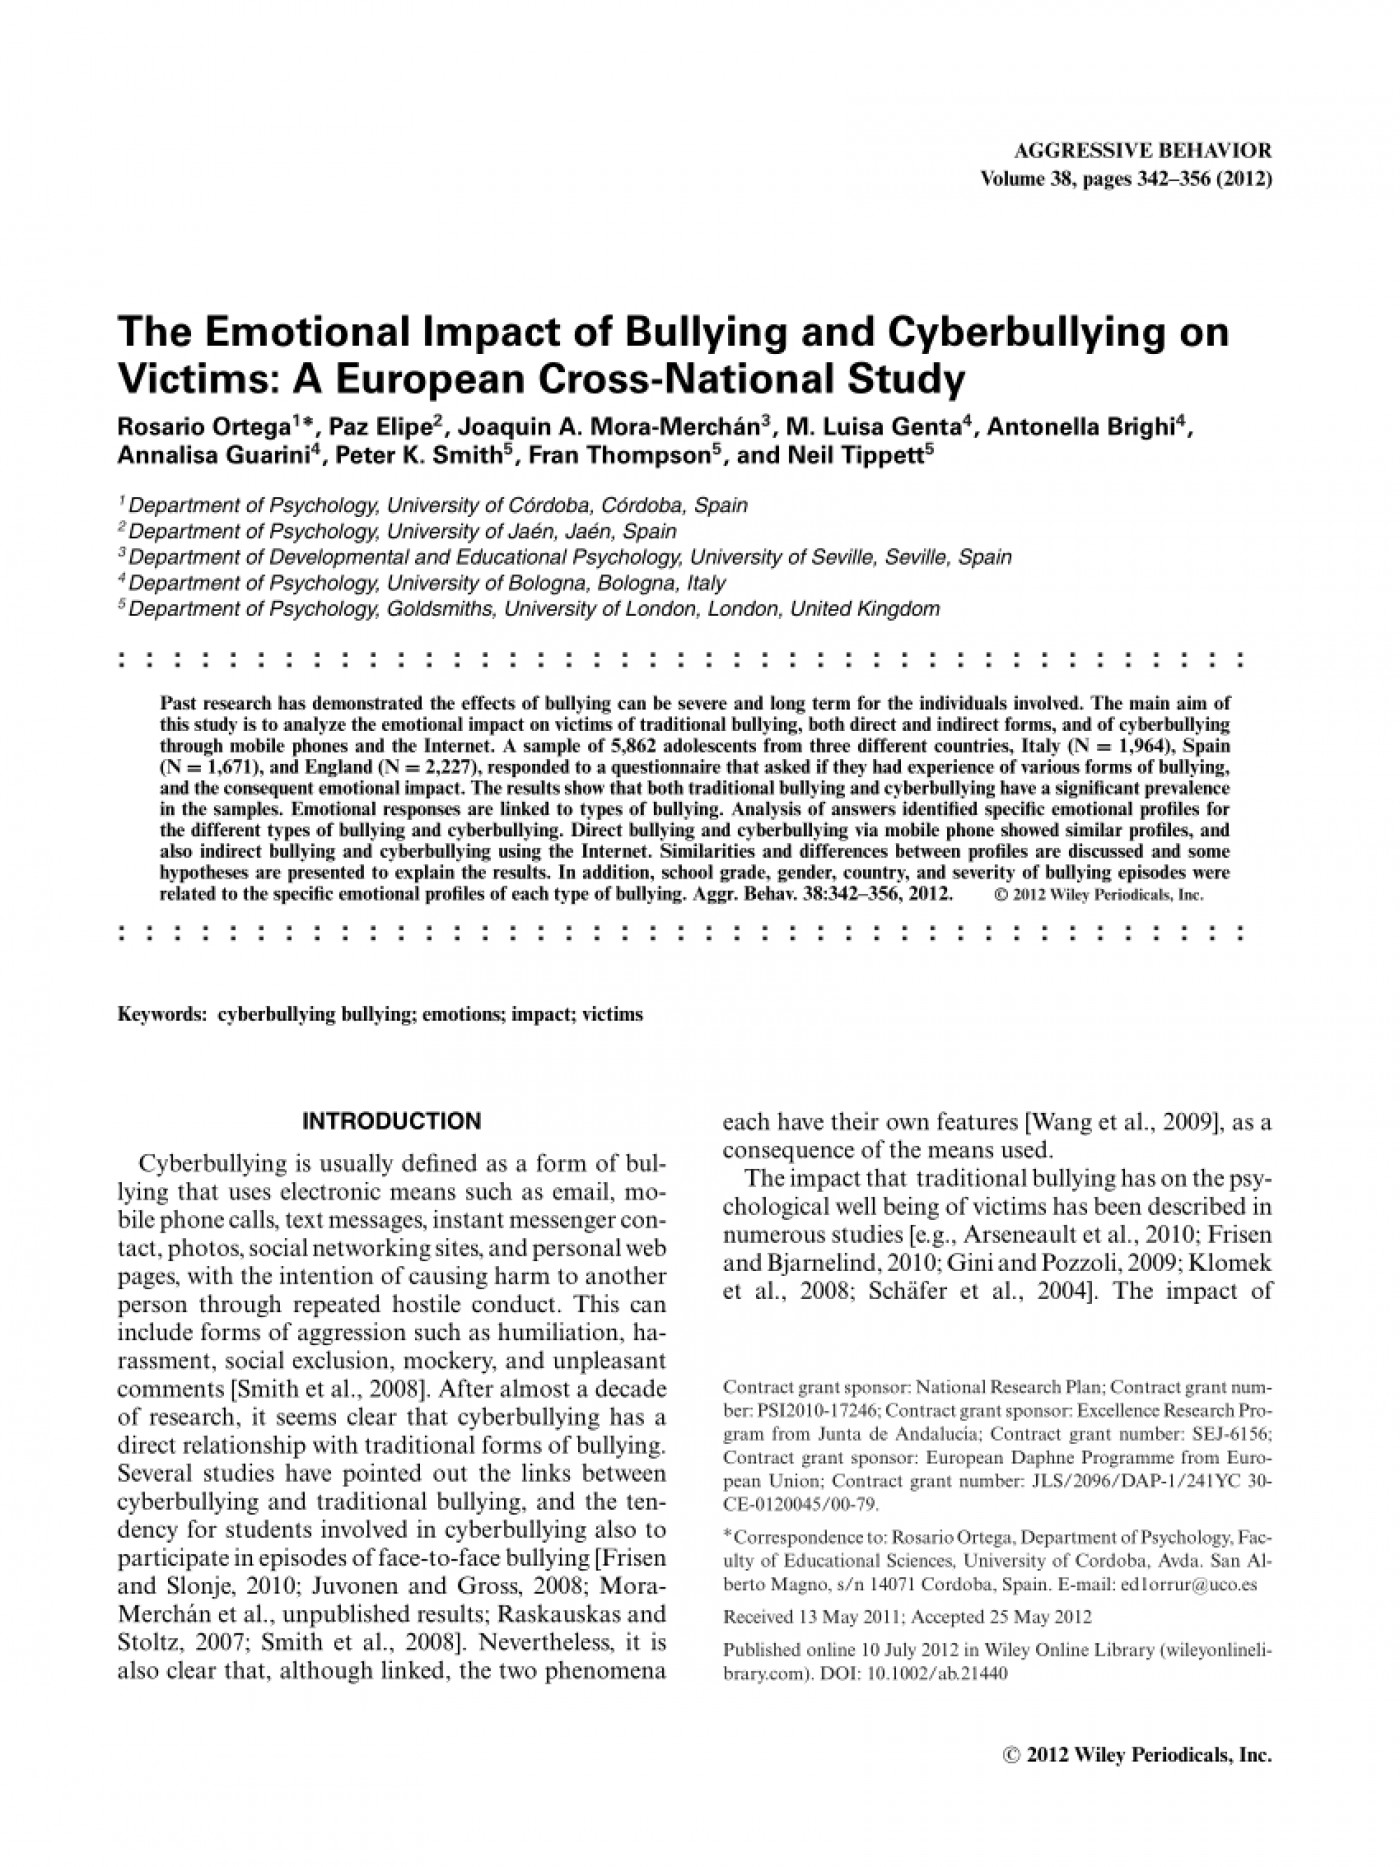 002 Psychological Effects Of Bullying Research Paper Breathtaking 1400